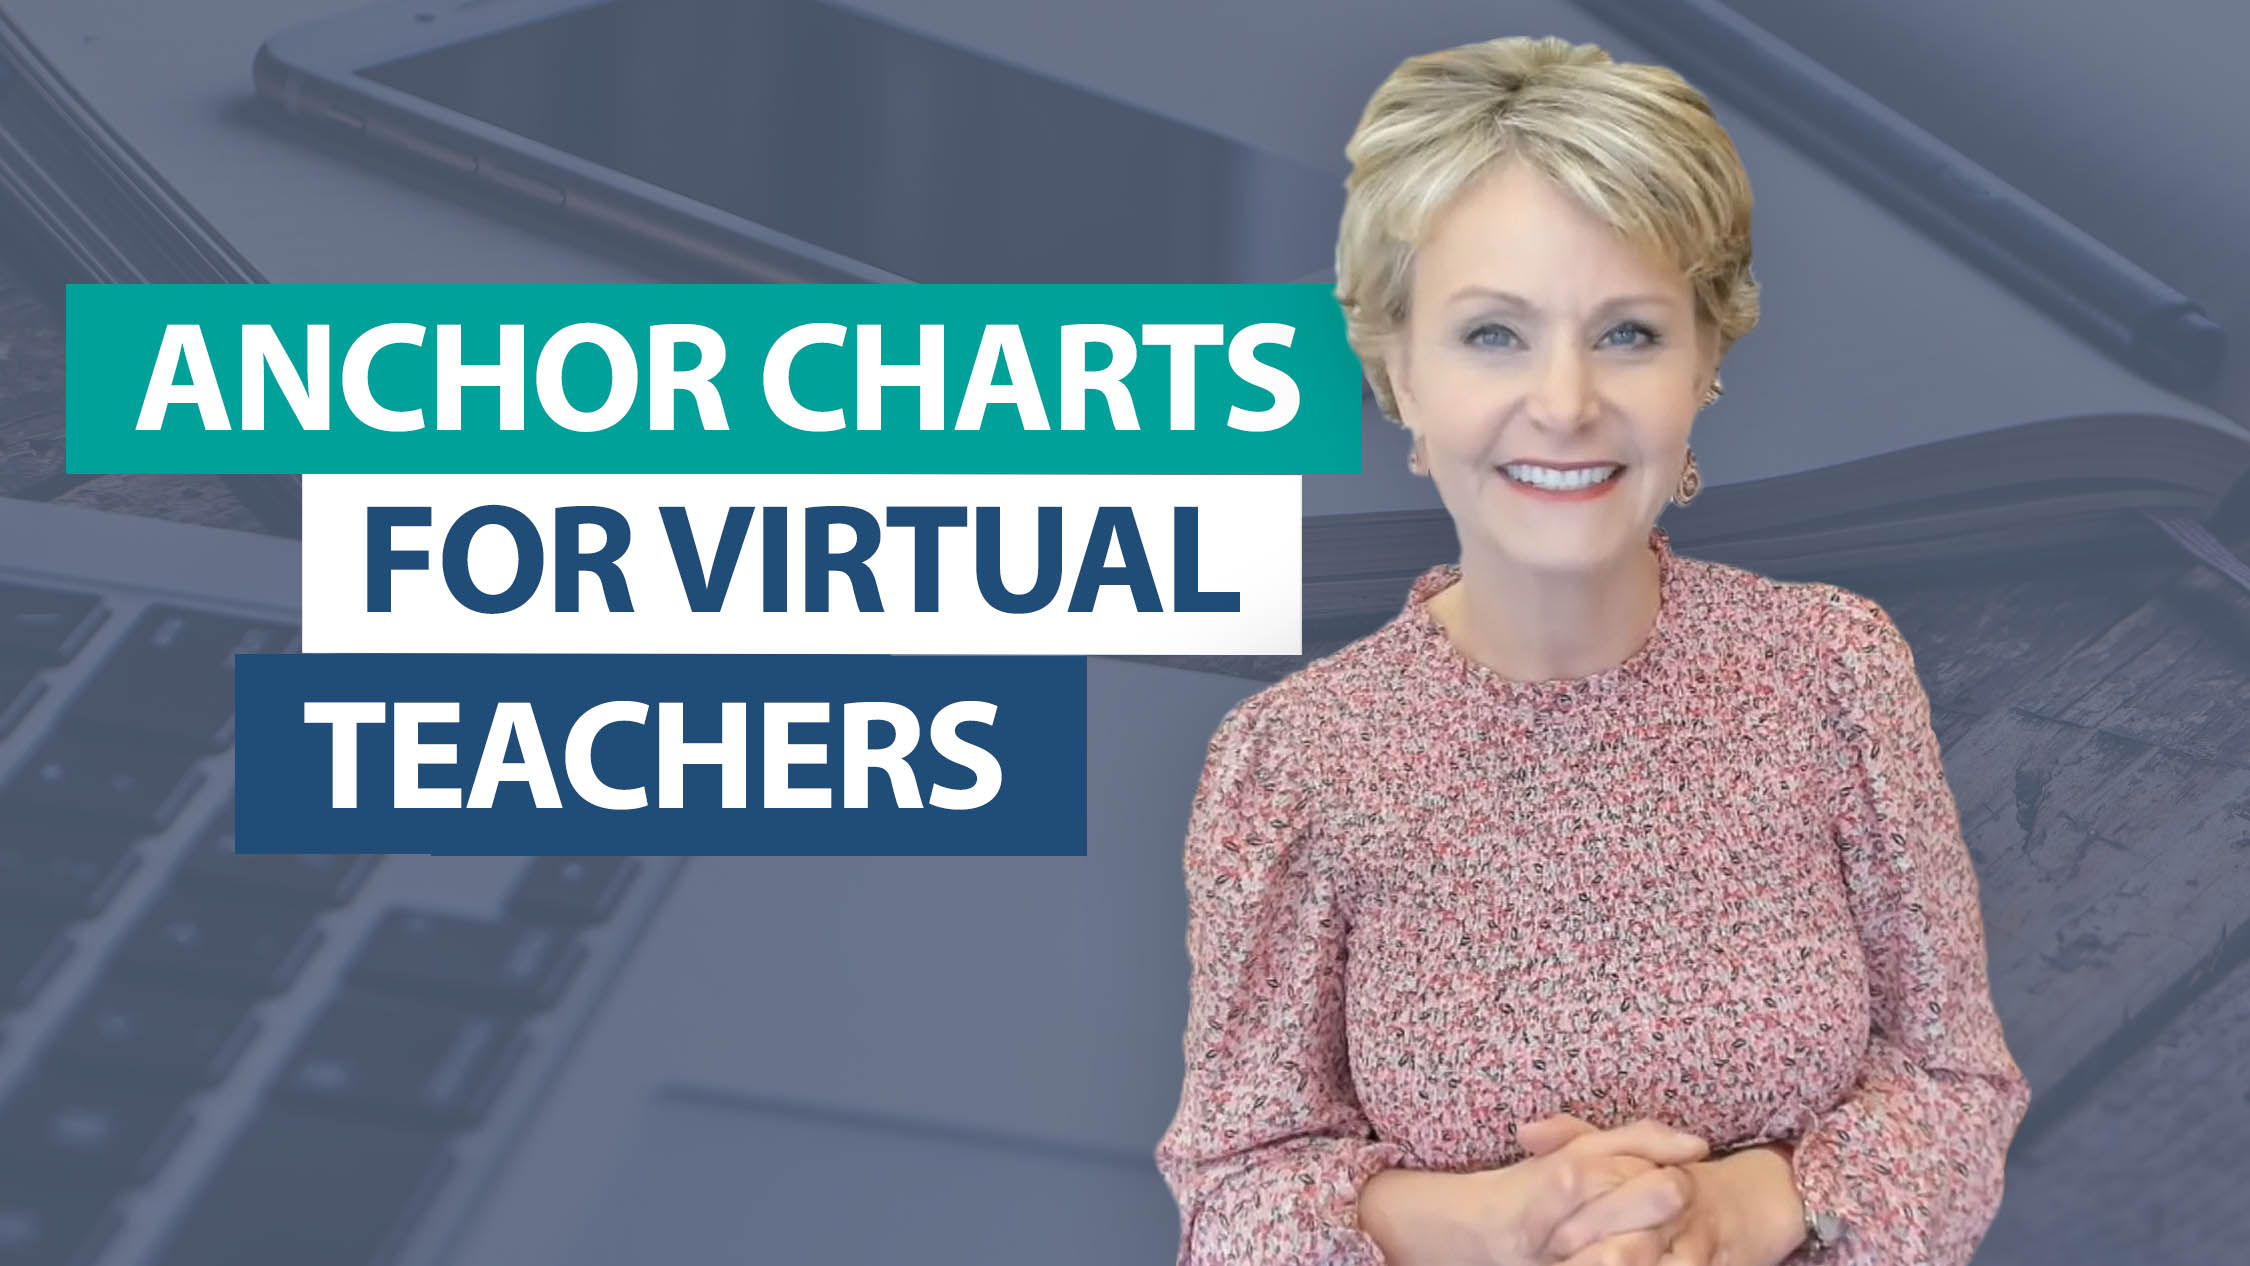 How can I use your ready-made lesson resources as a virtual teacher